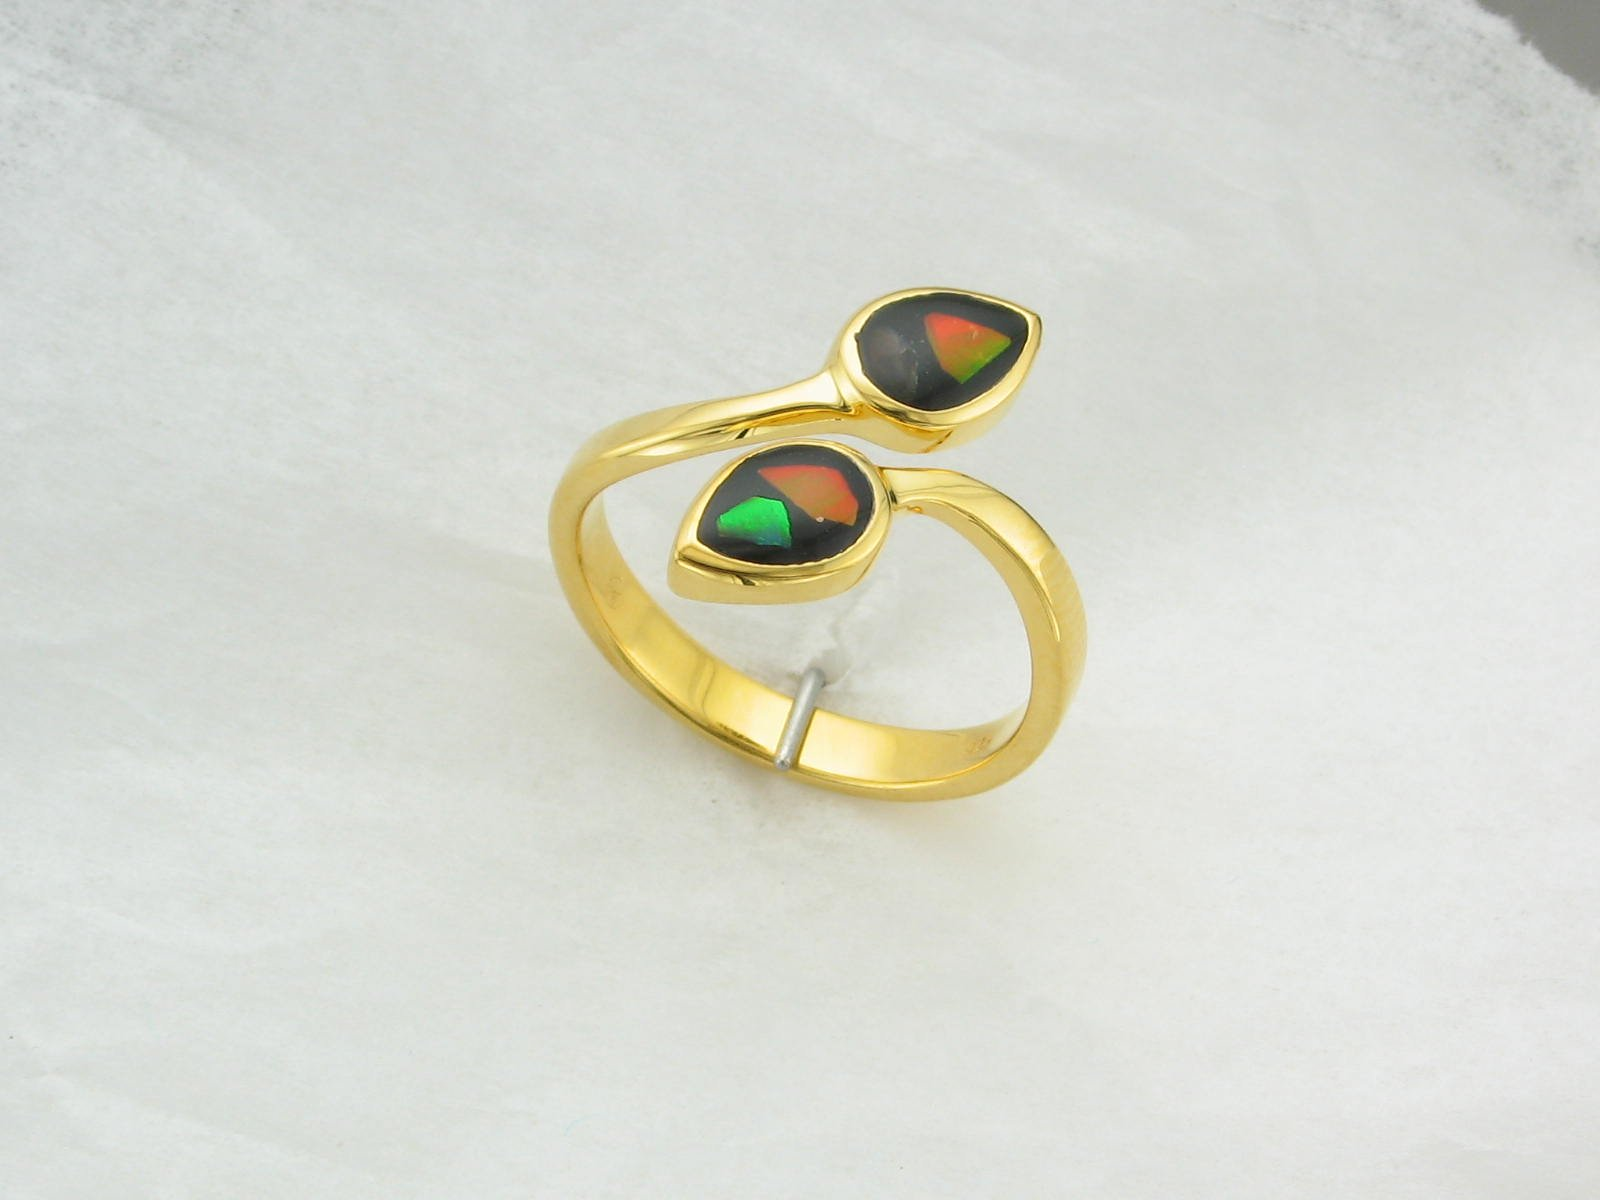 B Grade Ammolite Elements ByPass Ring set in Gold Plated Sterling Silver